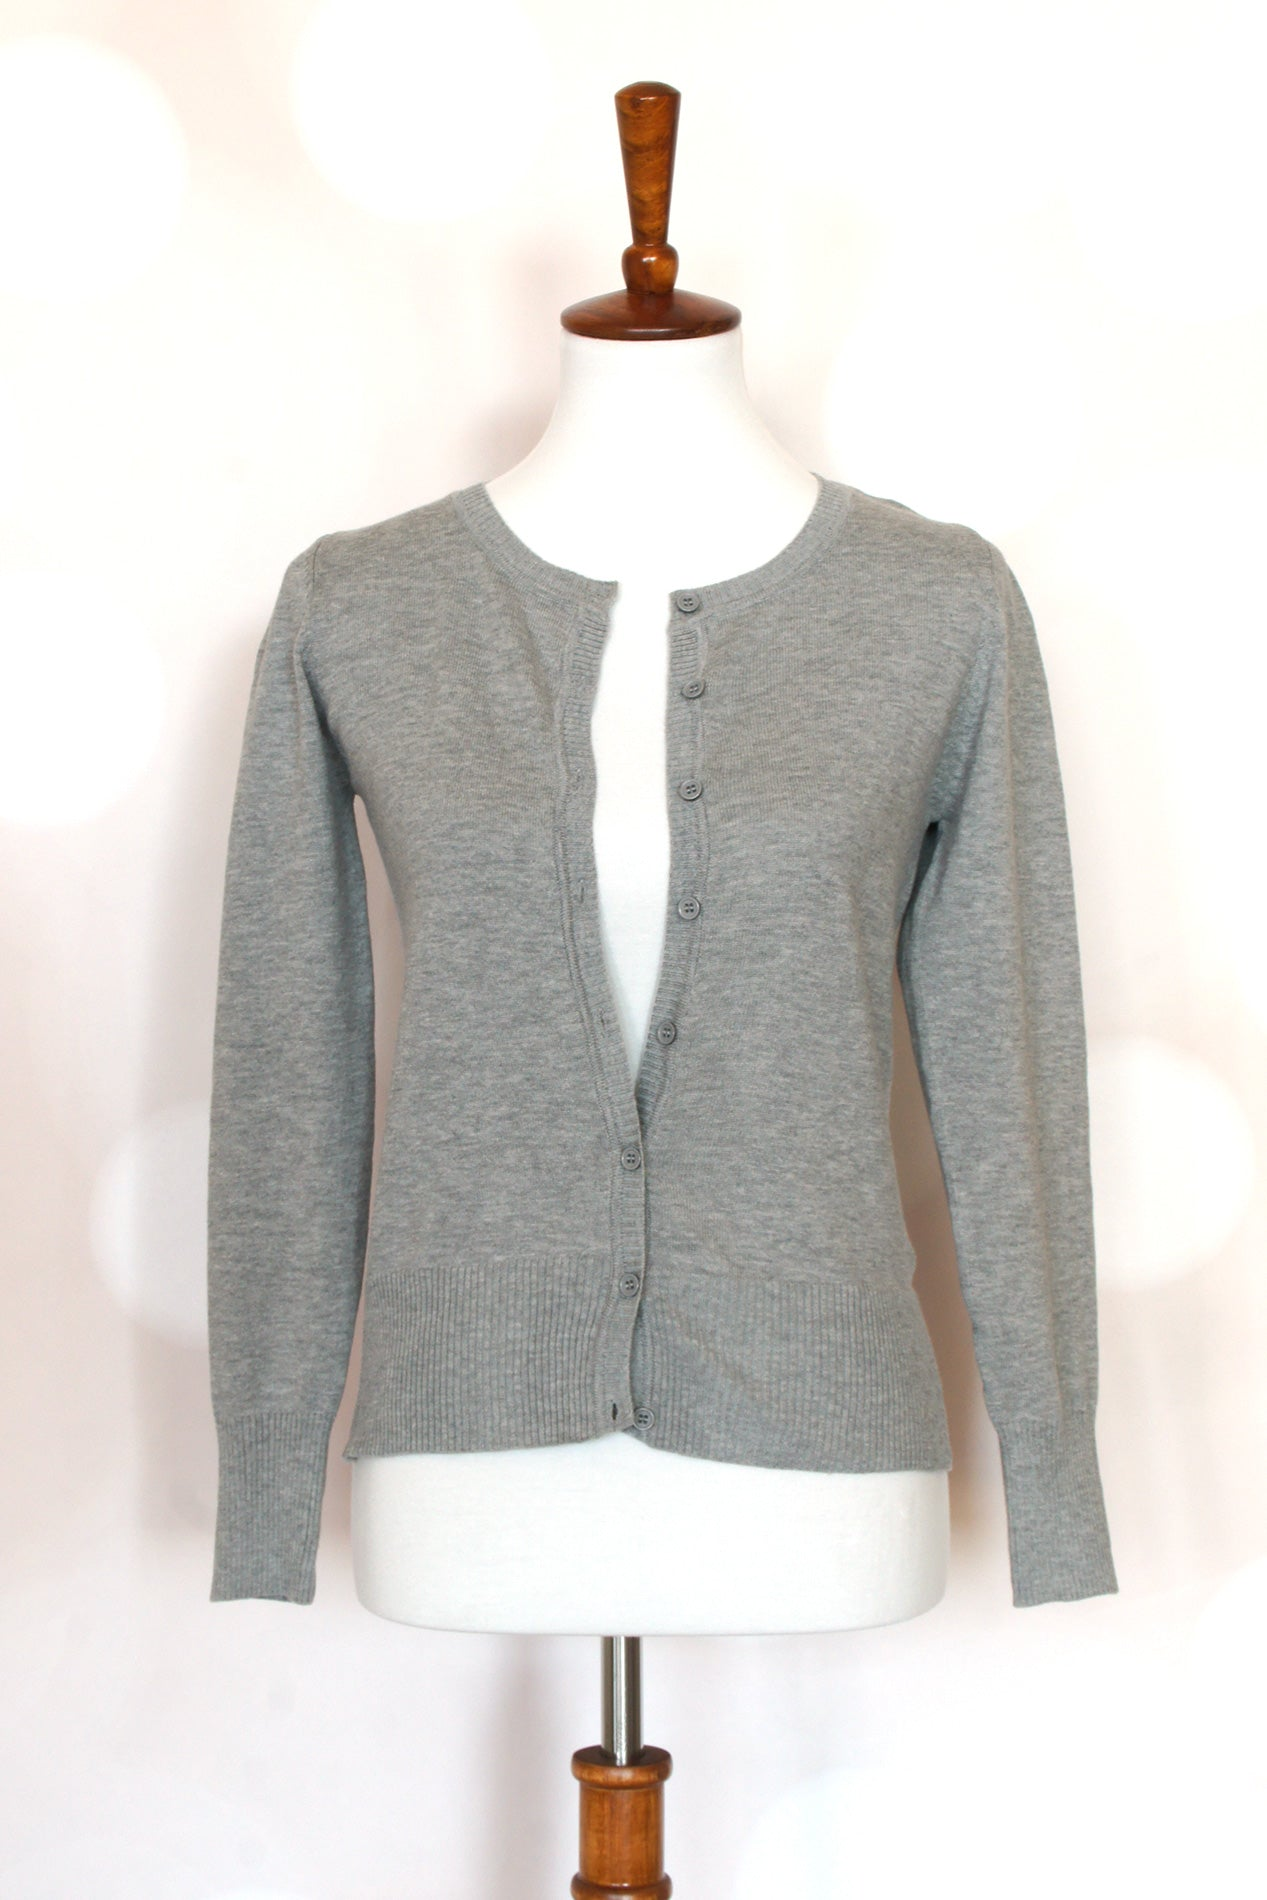 Crew Neck Cardigan Sweater - Grandir Fashions